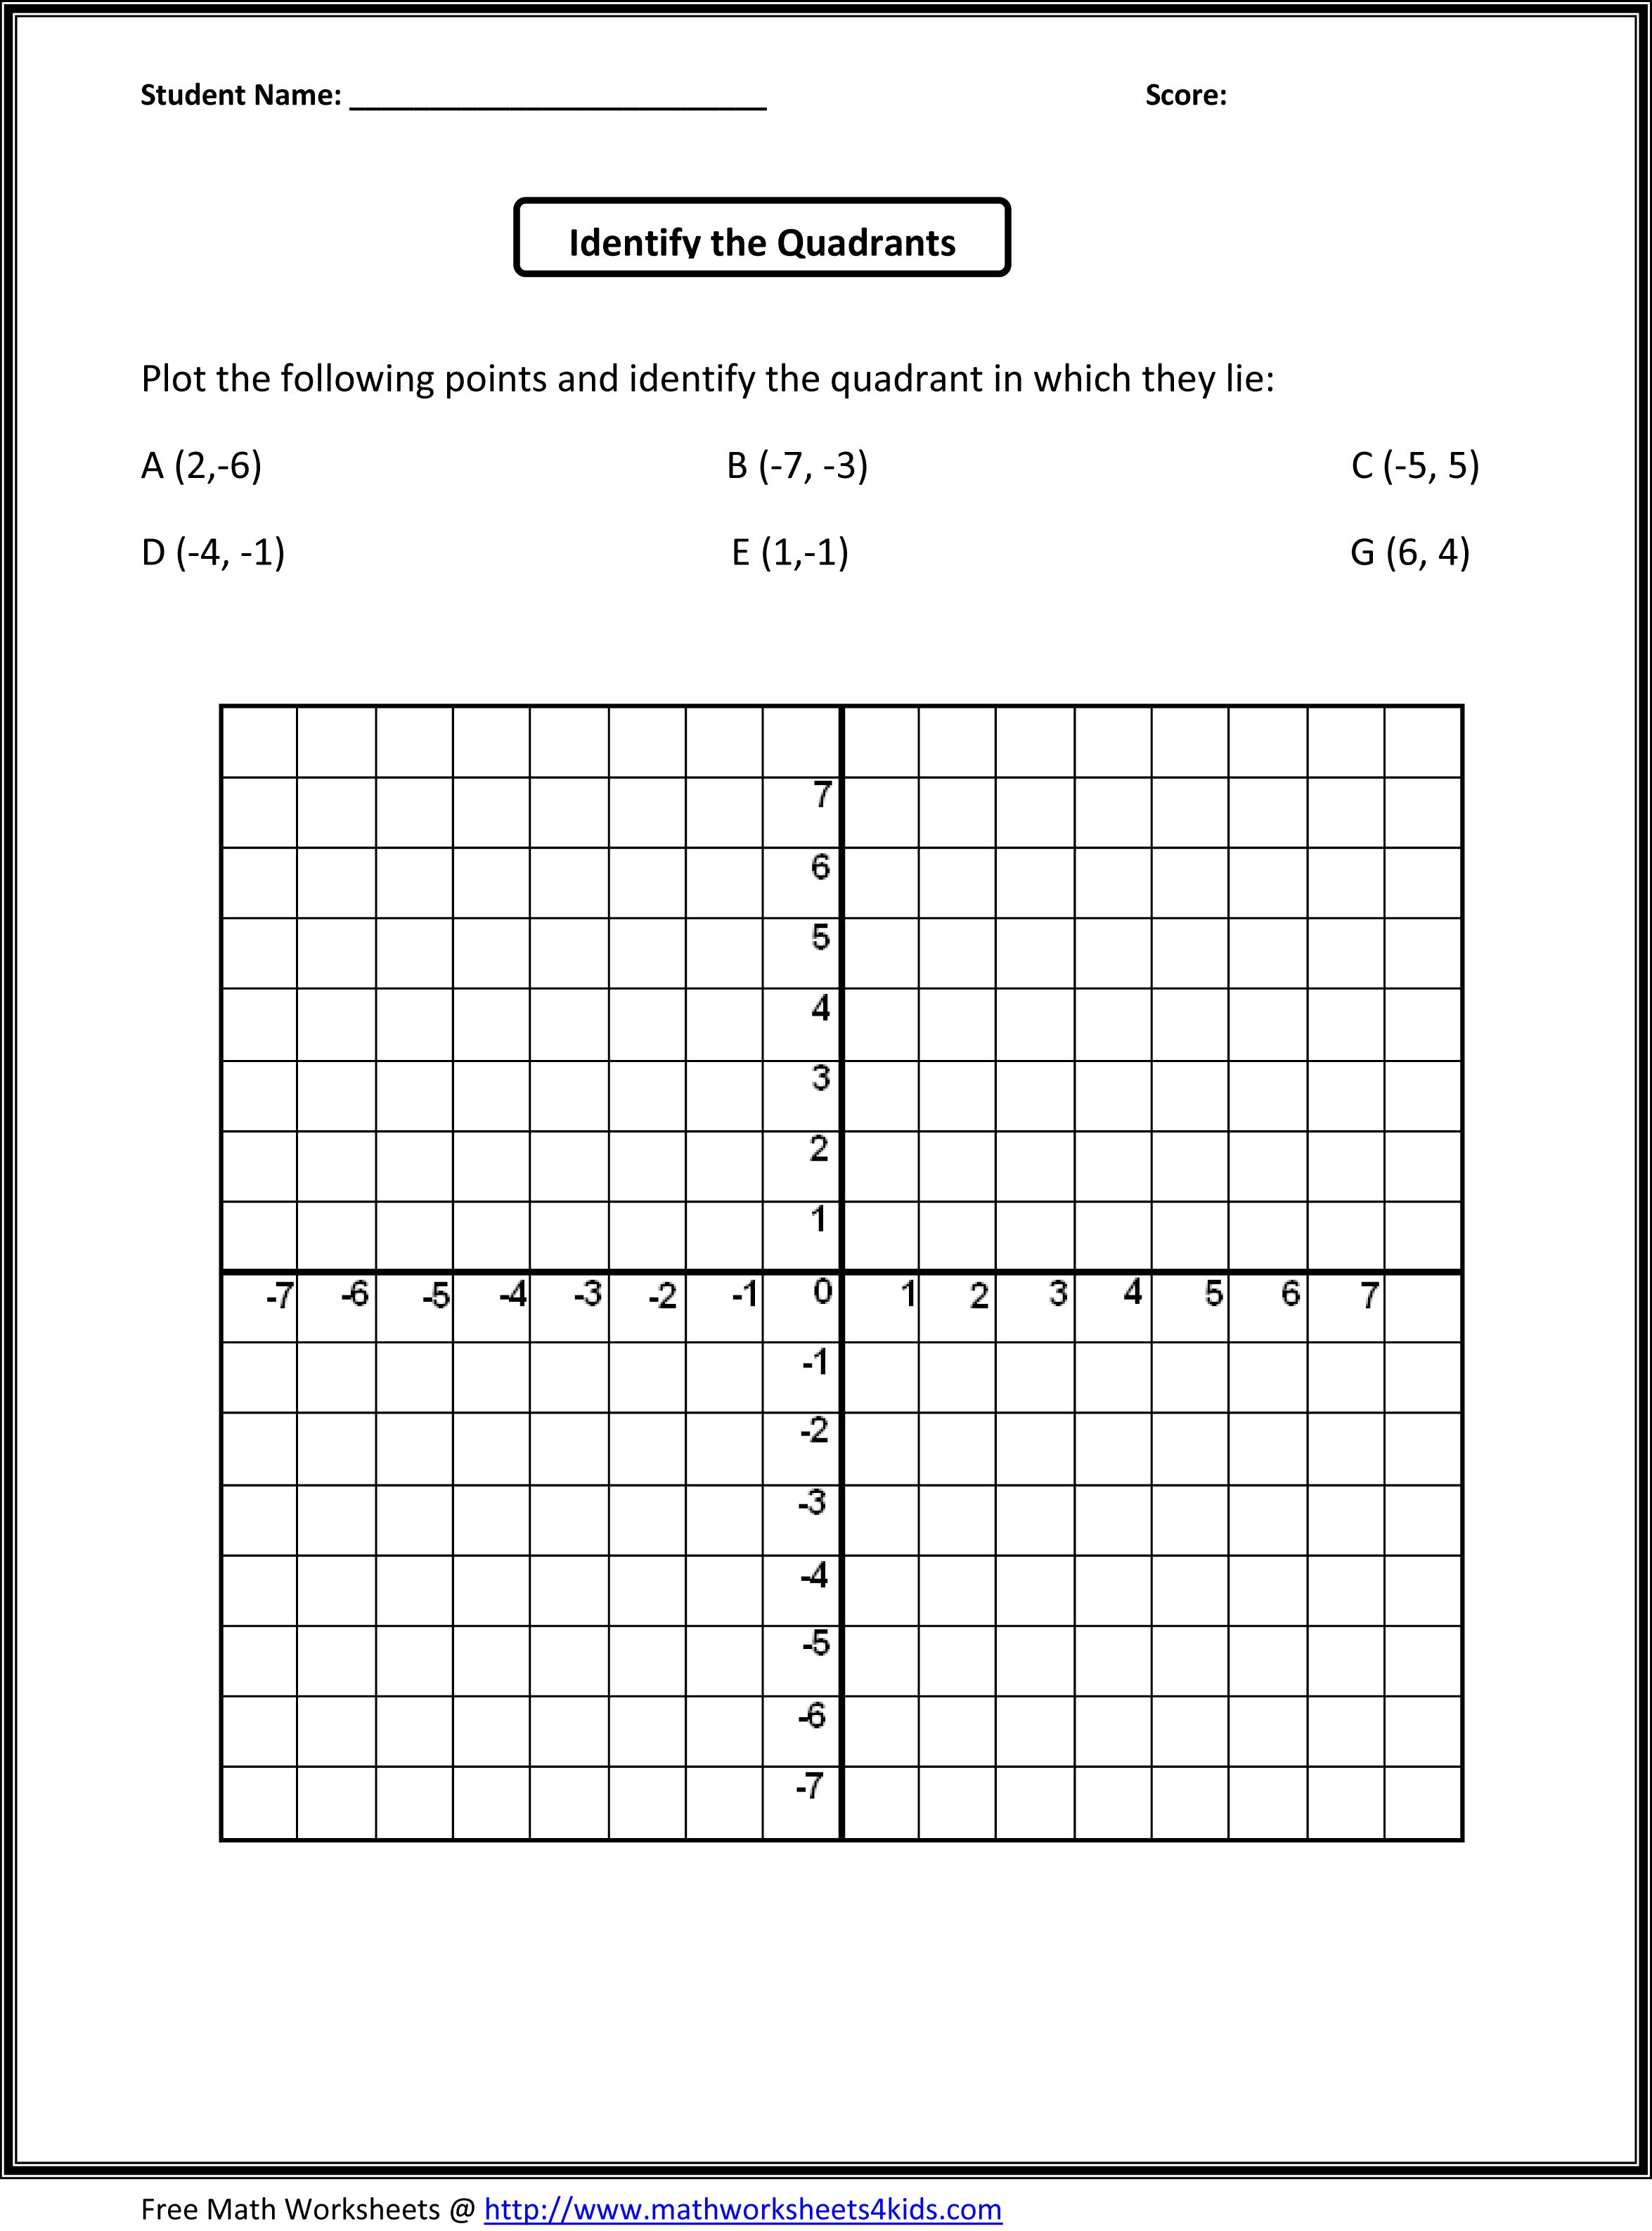 hight resolution of Pin on EDUCATIONAL WORK SHEETS 4 KIDS!